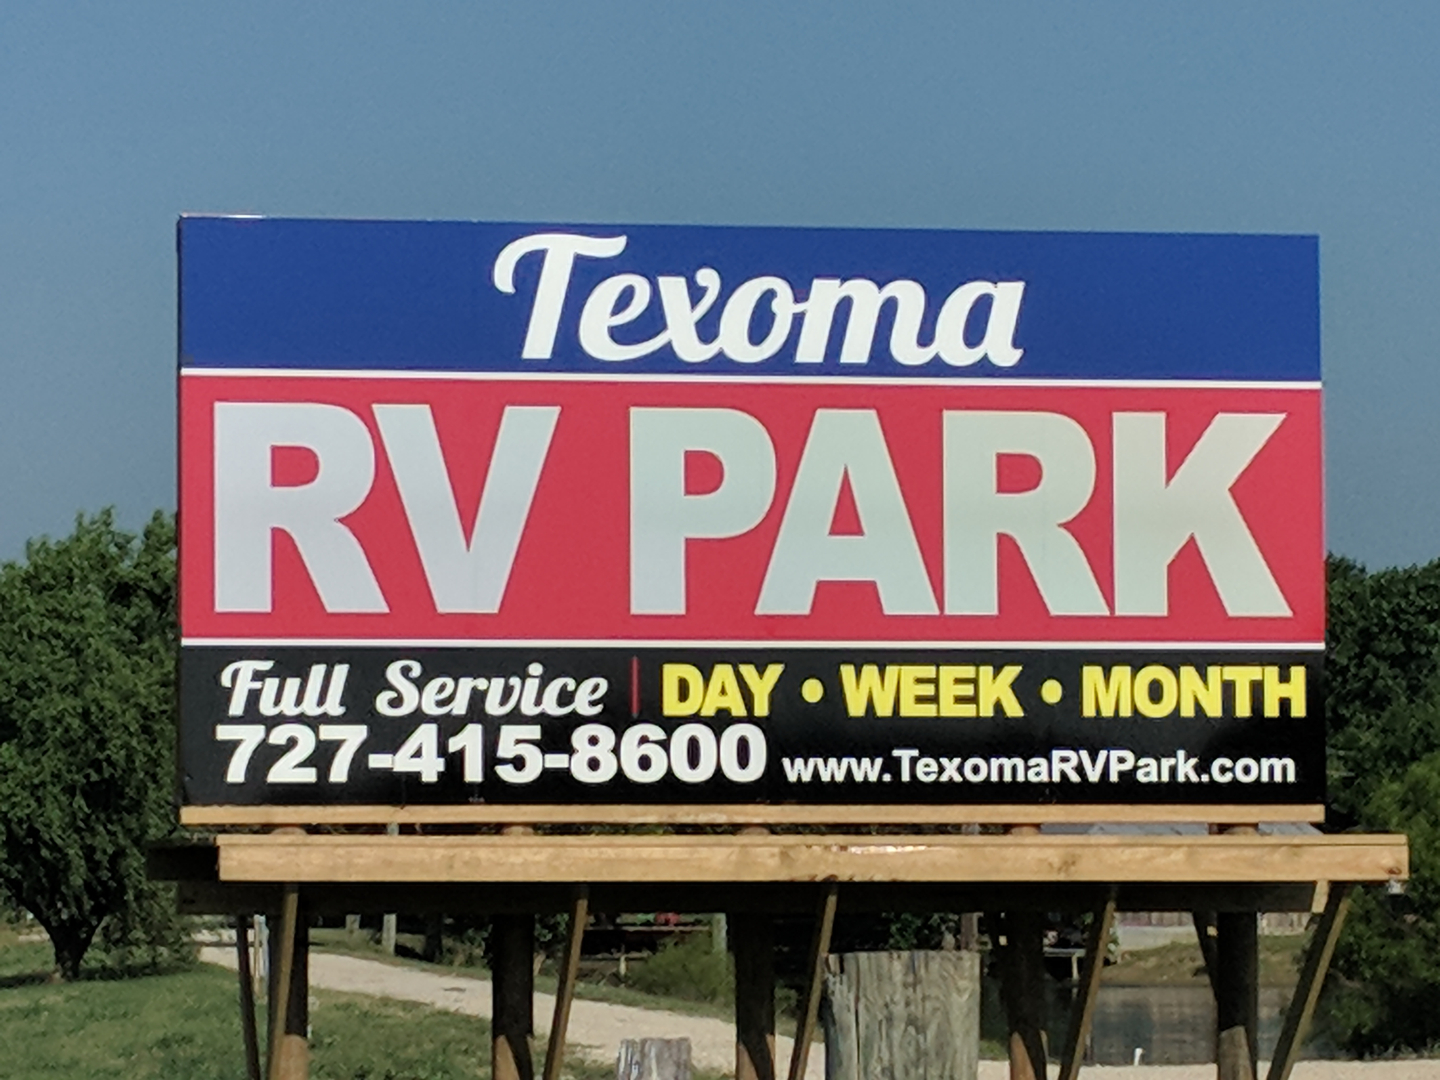 Texoma RV Park - RV Park, Sherman, Texas, Campground